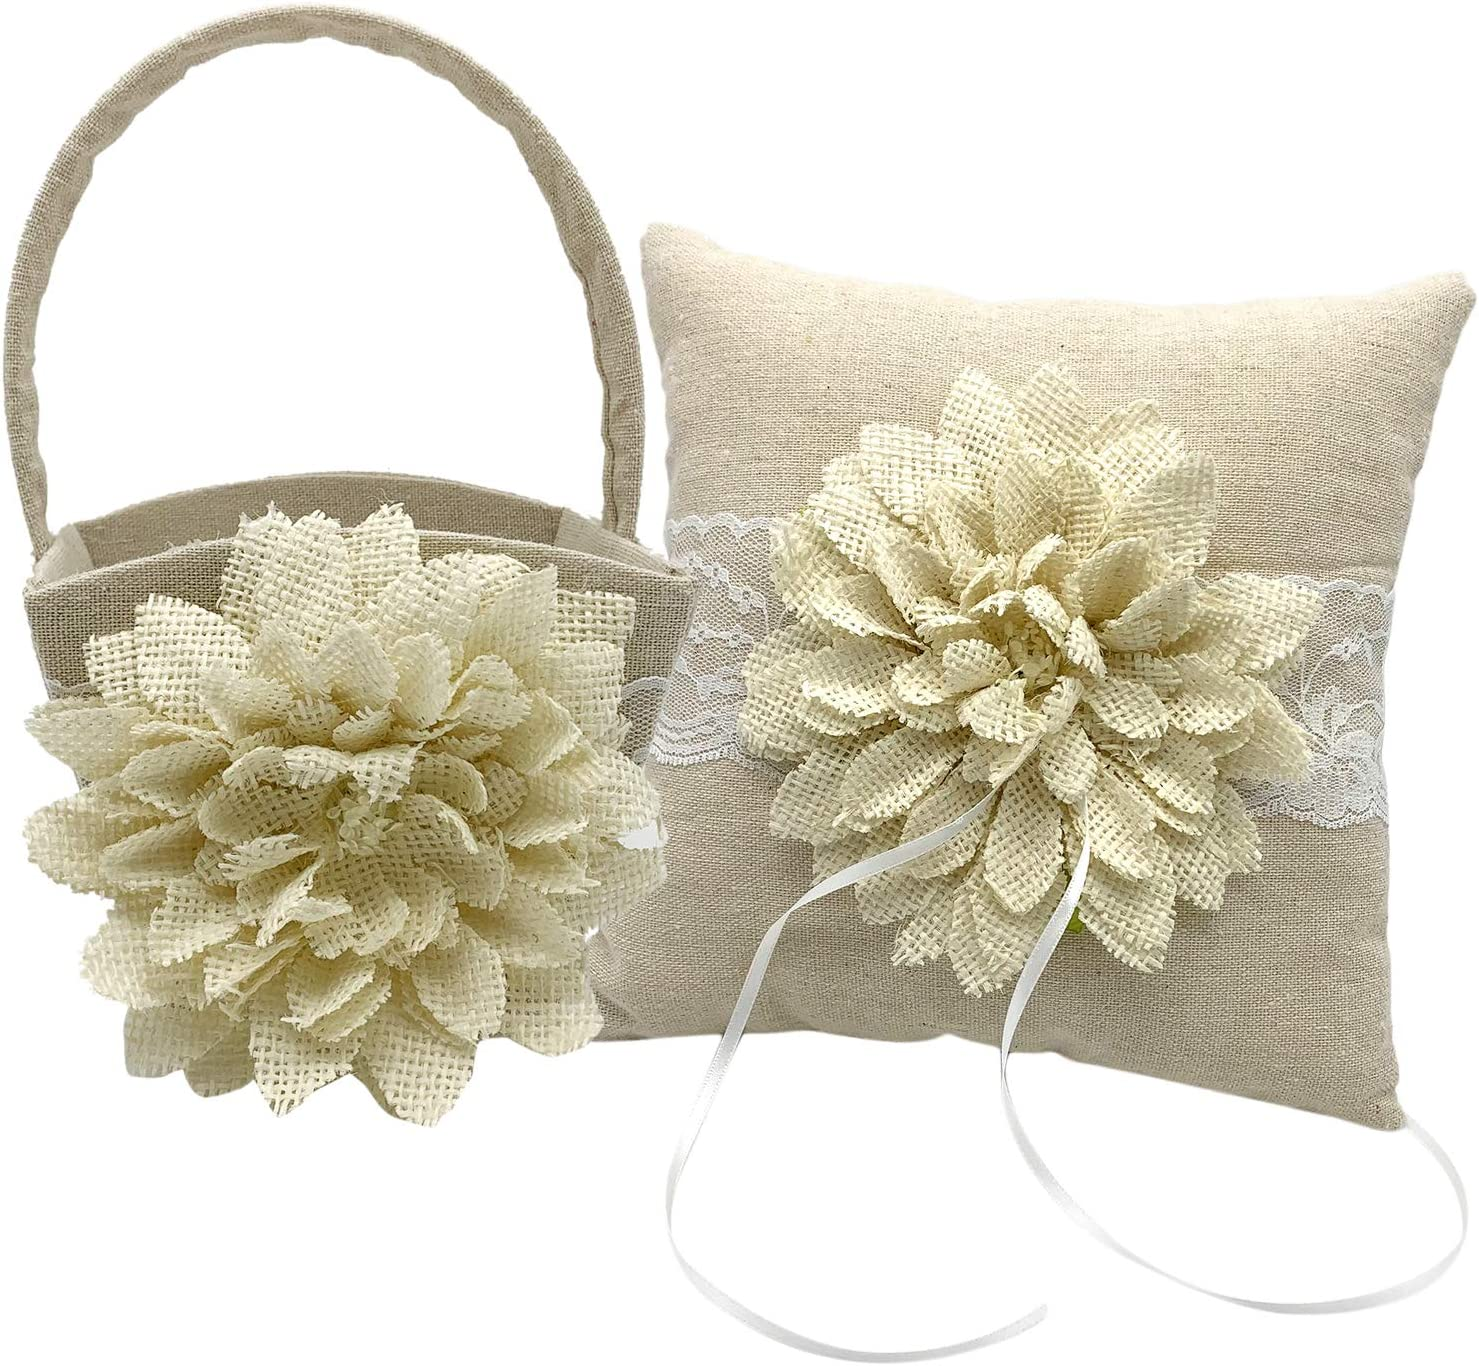 Staright Flower Basket+Wedding Ring Bearer Pillow Big Flower Lace Pearl Decor for Wedding Party Romantic